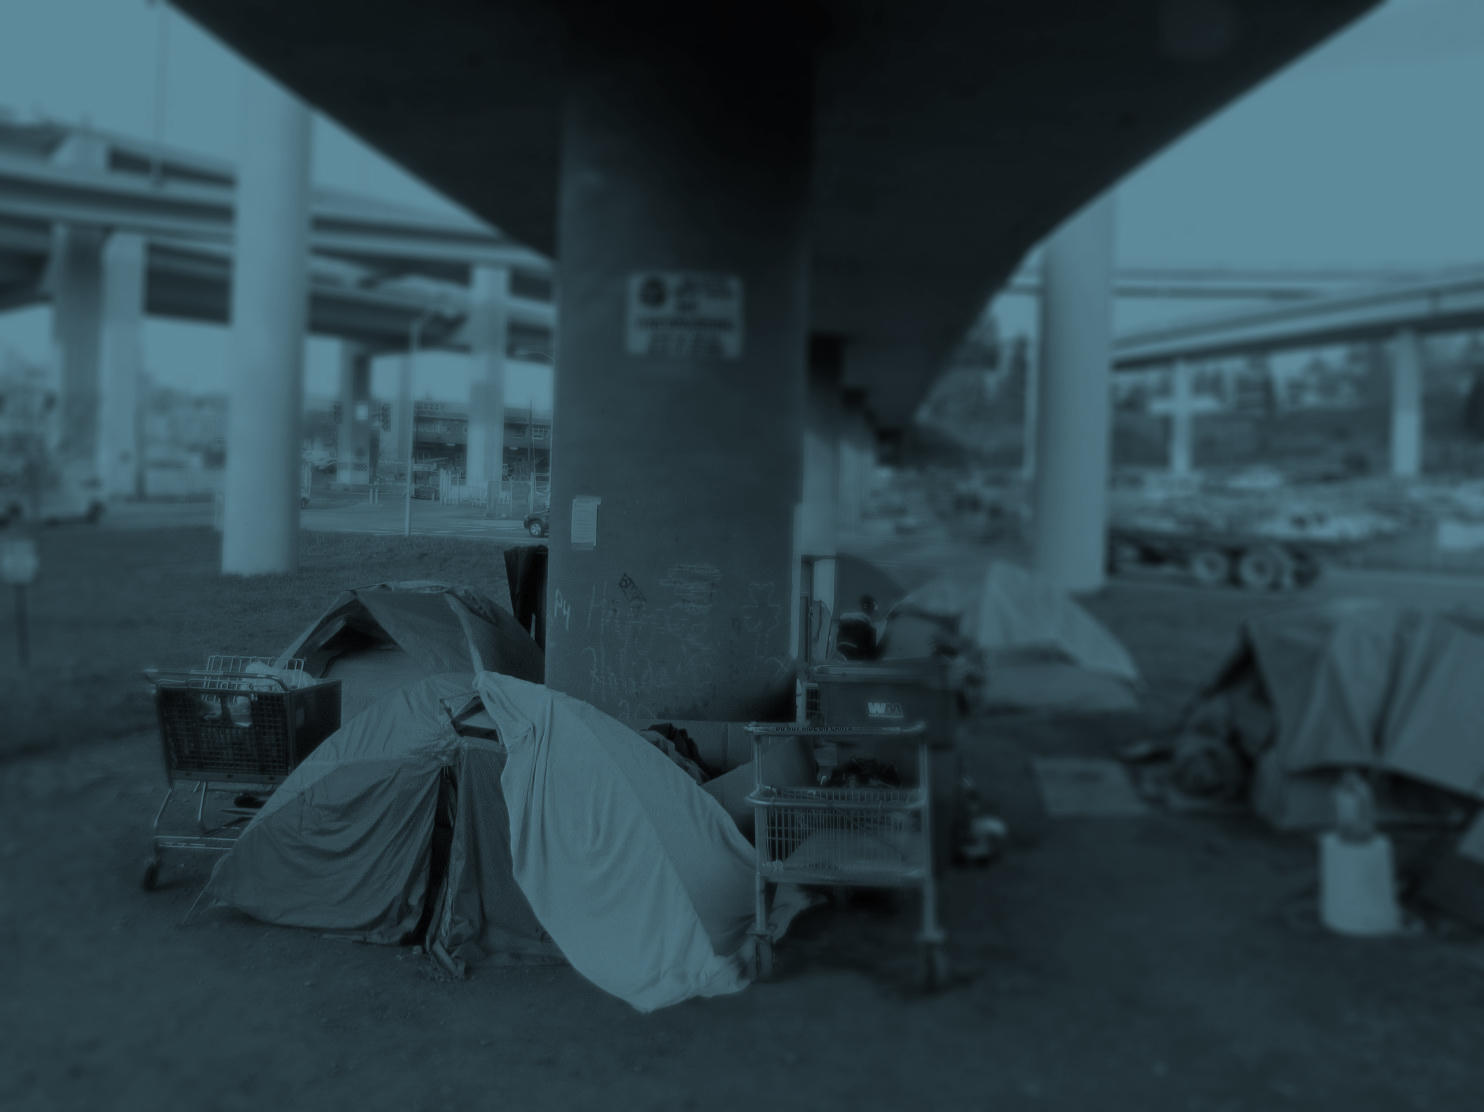 Homelessness in Vancouver